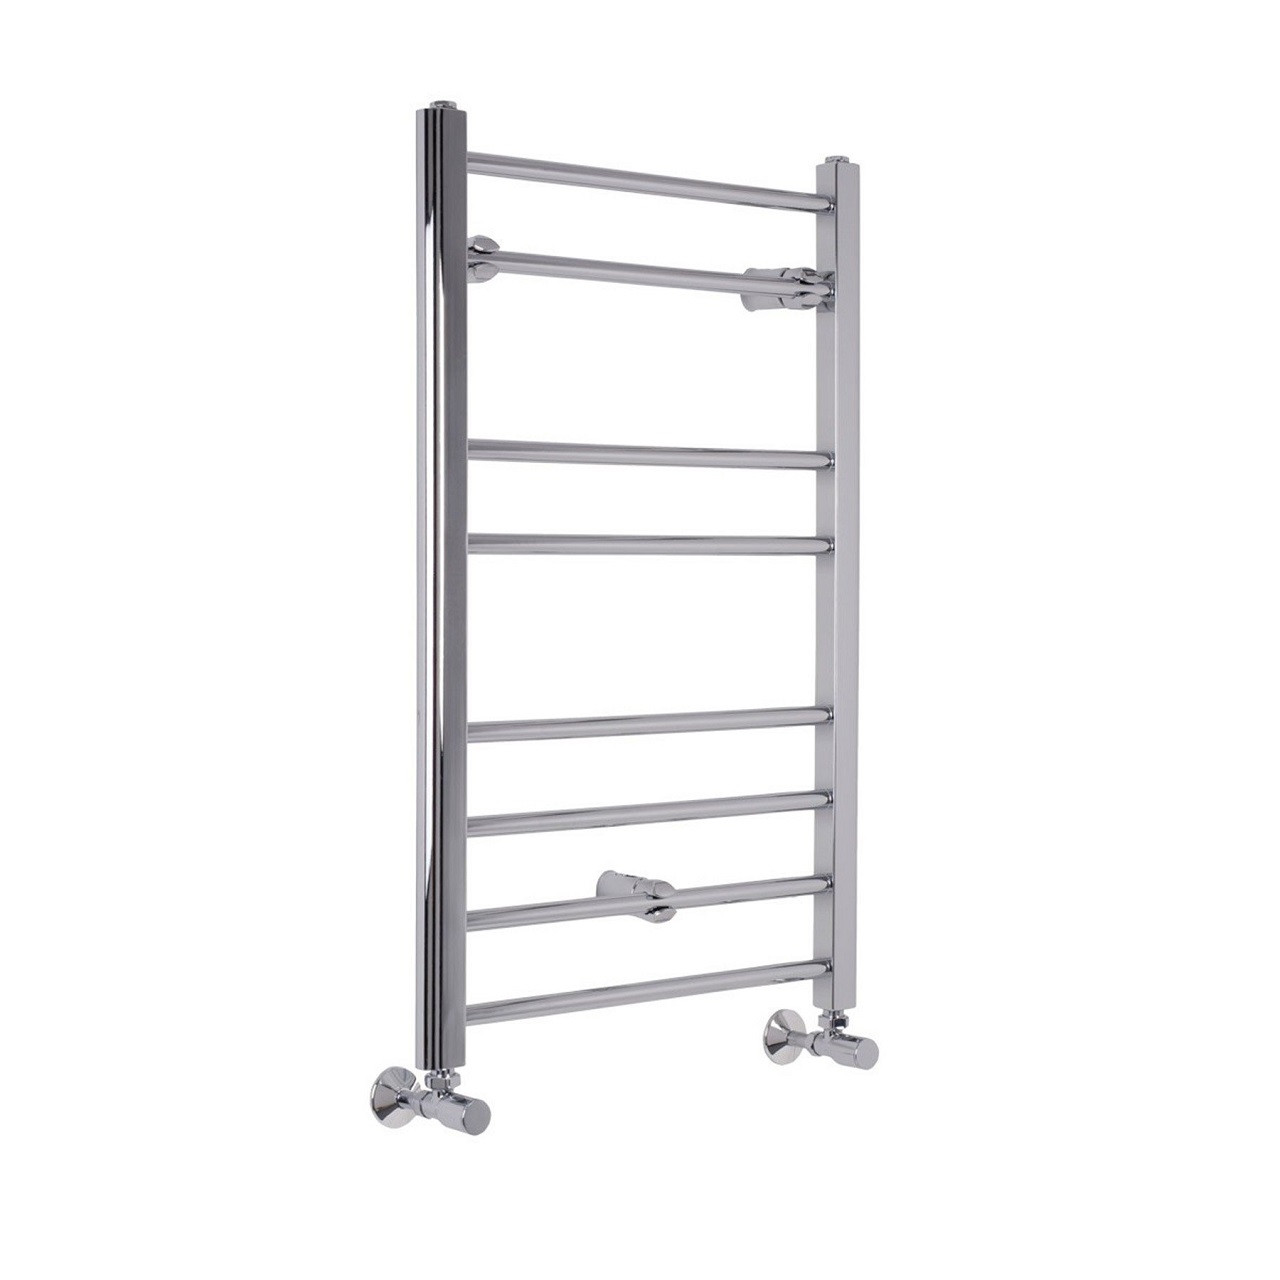 Econo Heat 800mm x 500mm Chrome Electric Towel Rail